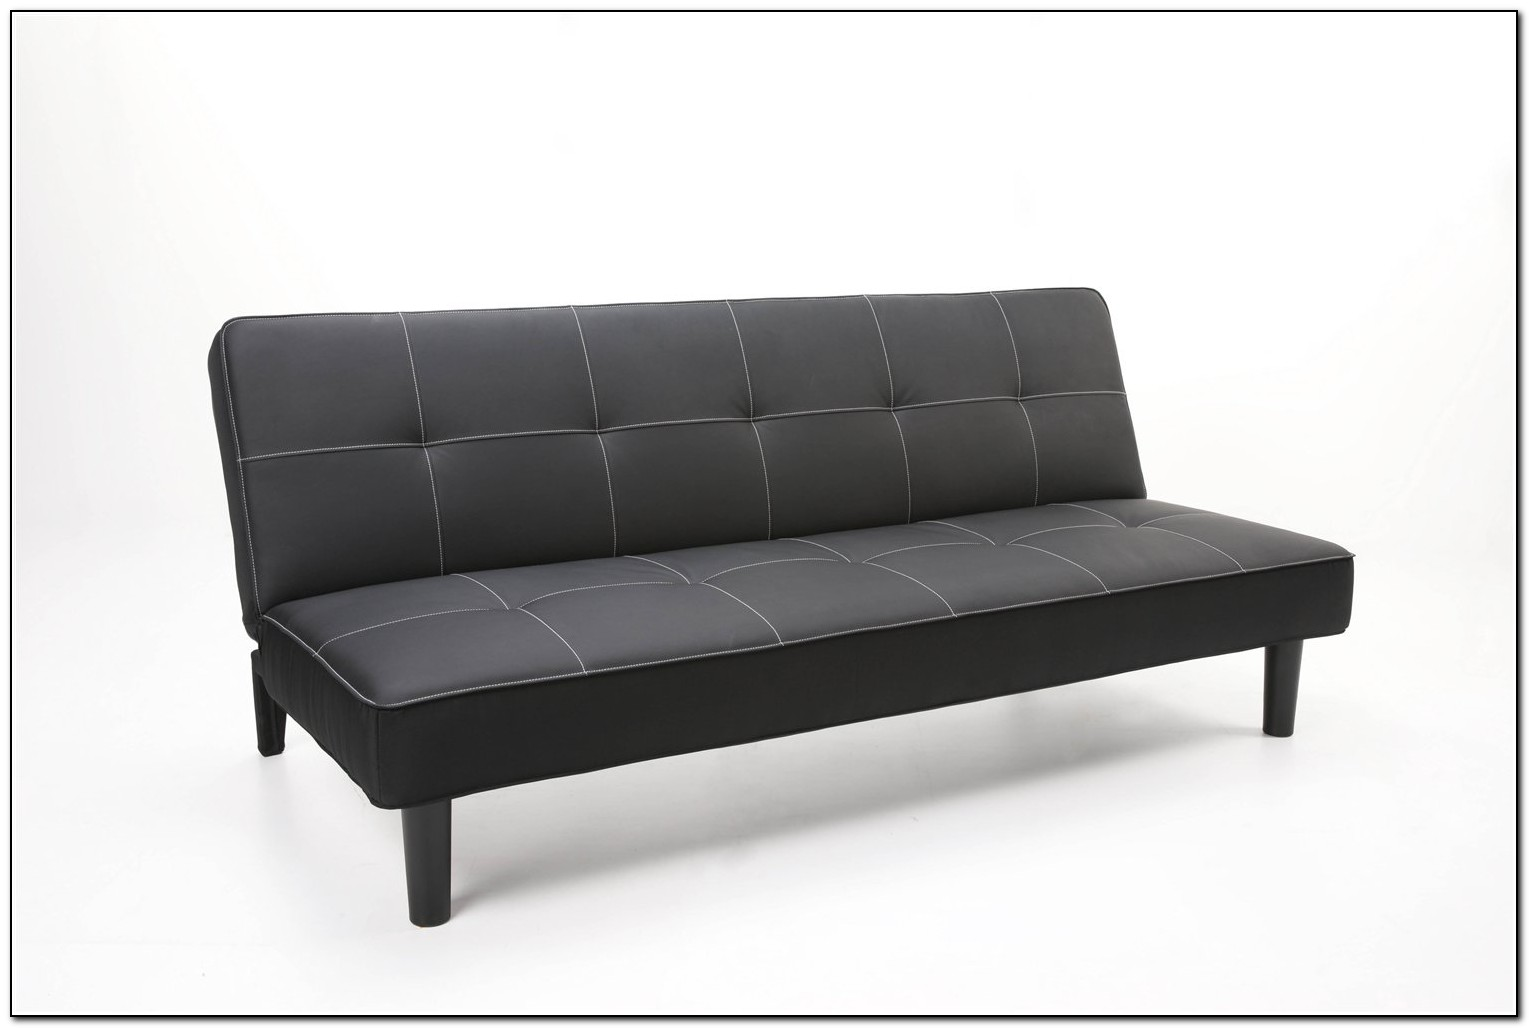 best sofa in singapore sofas for less uk leather bed download page  home design